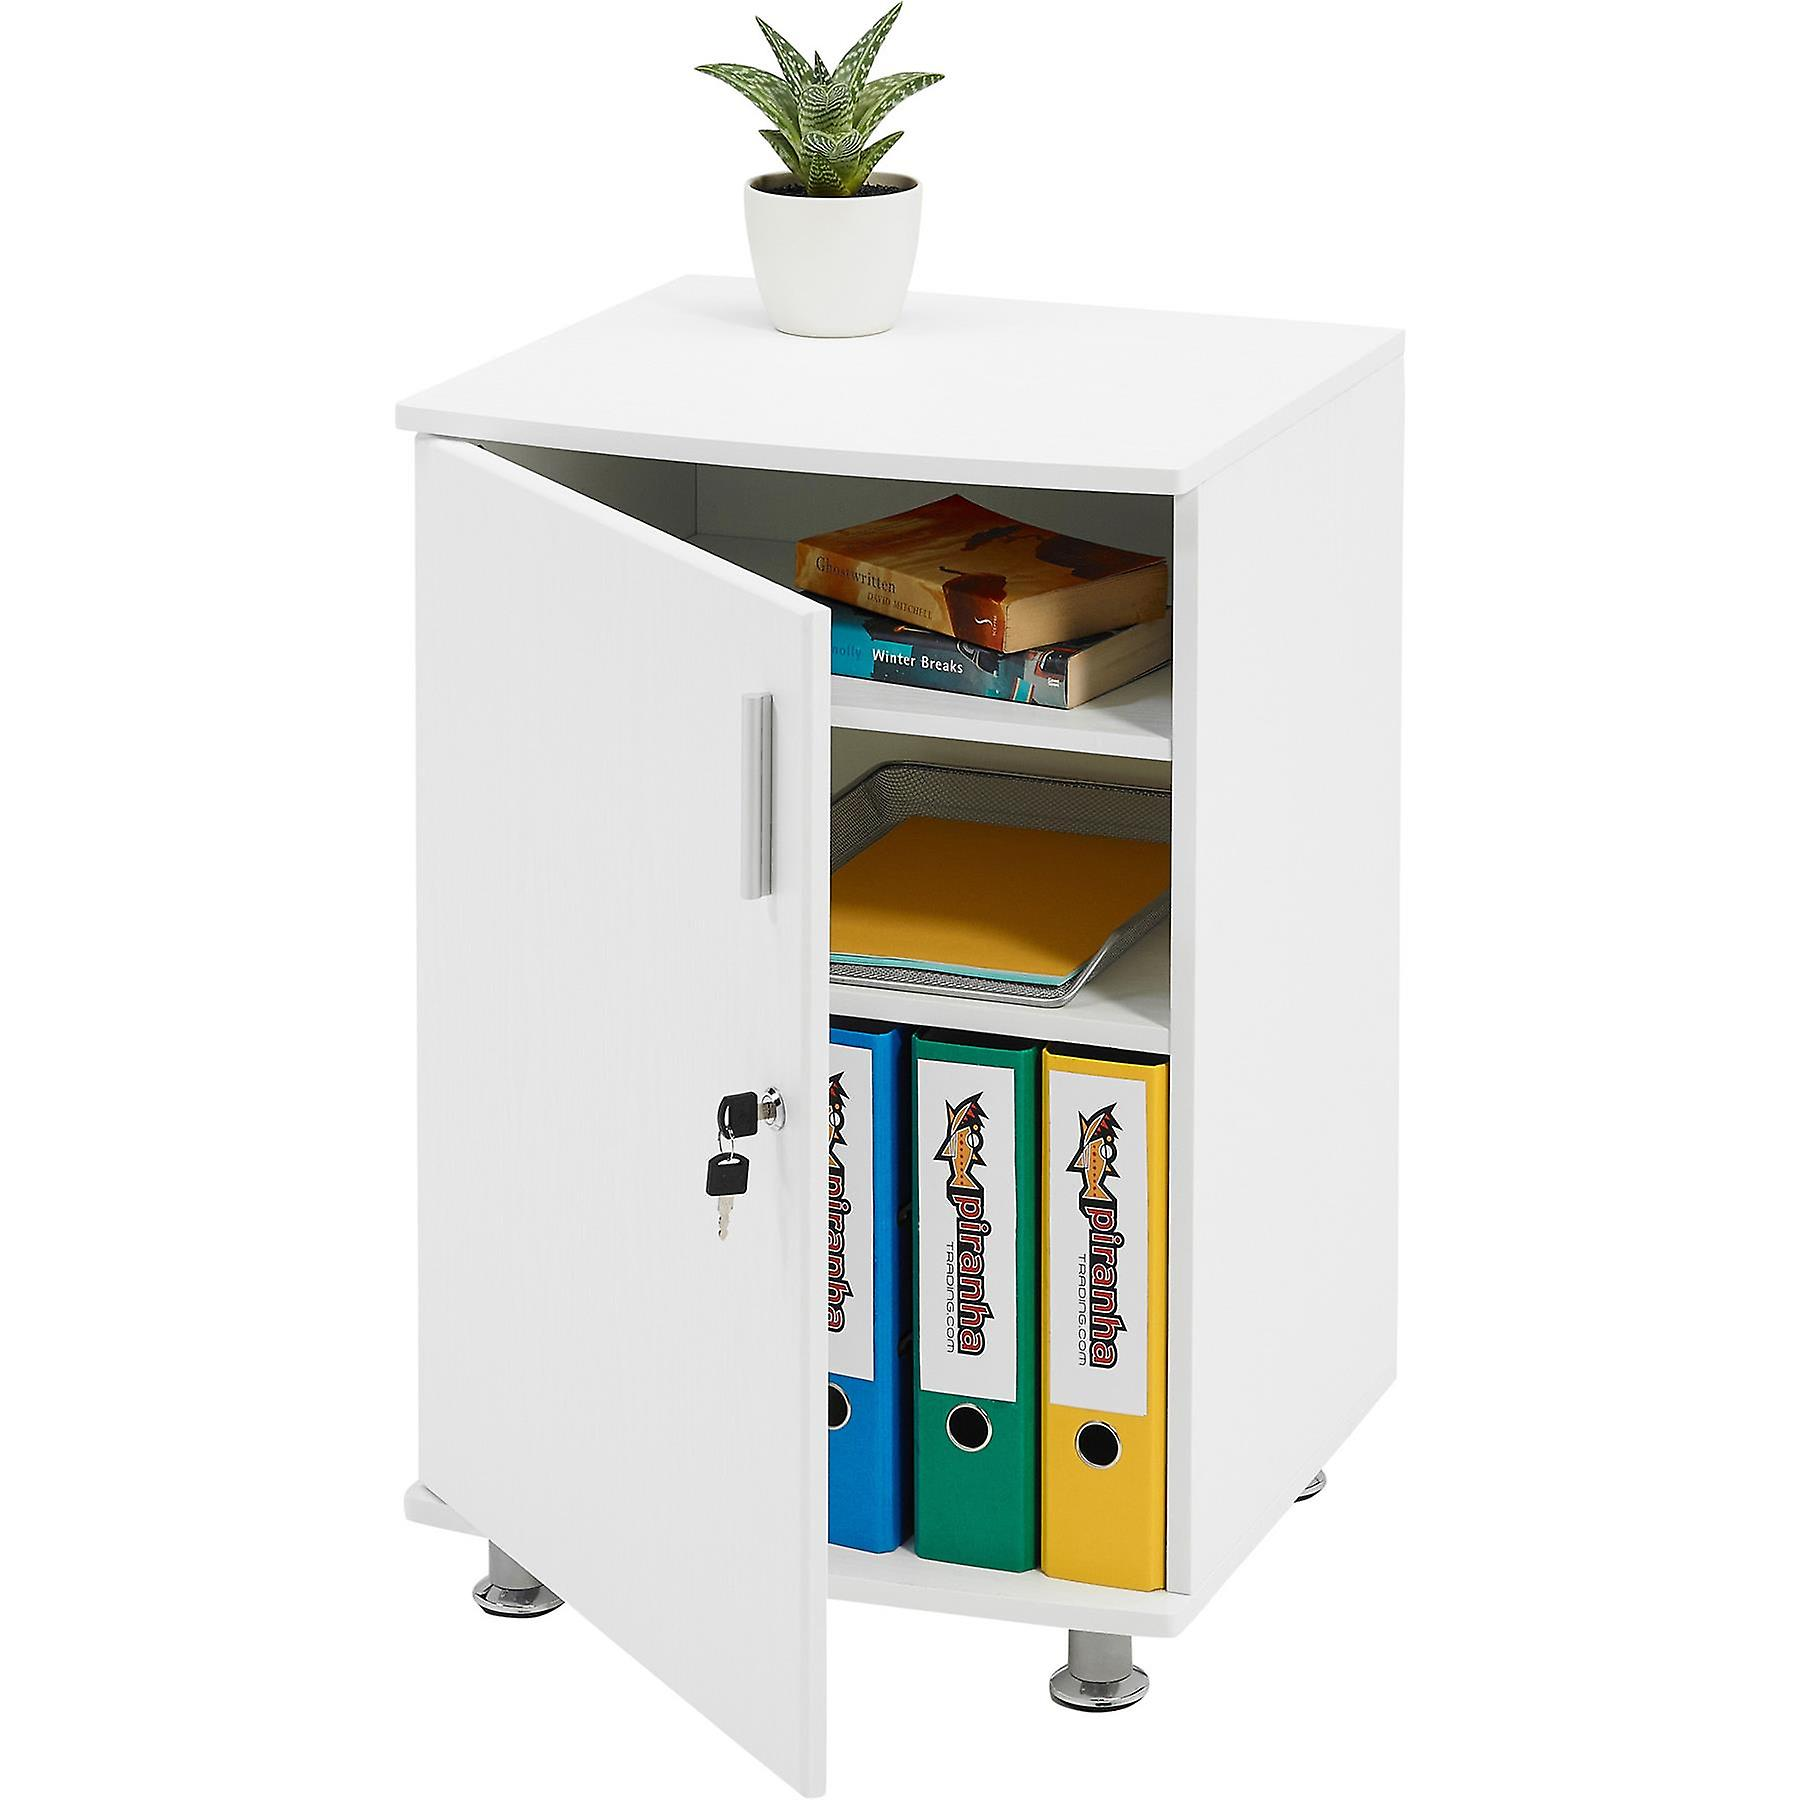 Armoire 4blanc Avec piranha Office Homeamp; De Extension Rangement Pc Desktop Serrure Bowfin tsrdBQChx